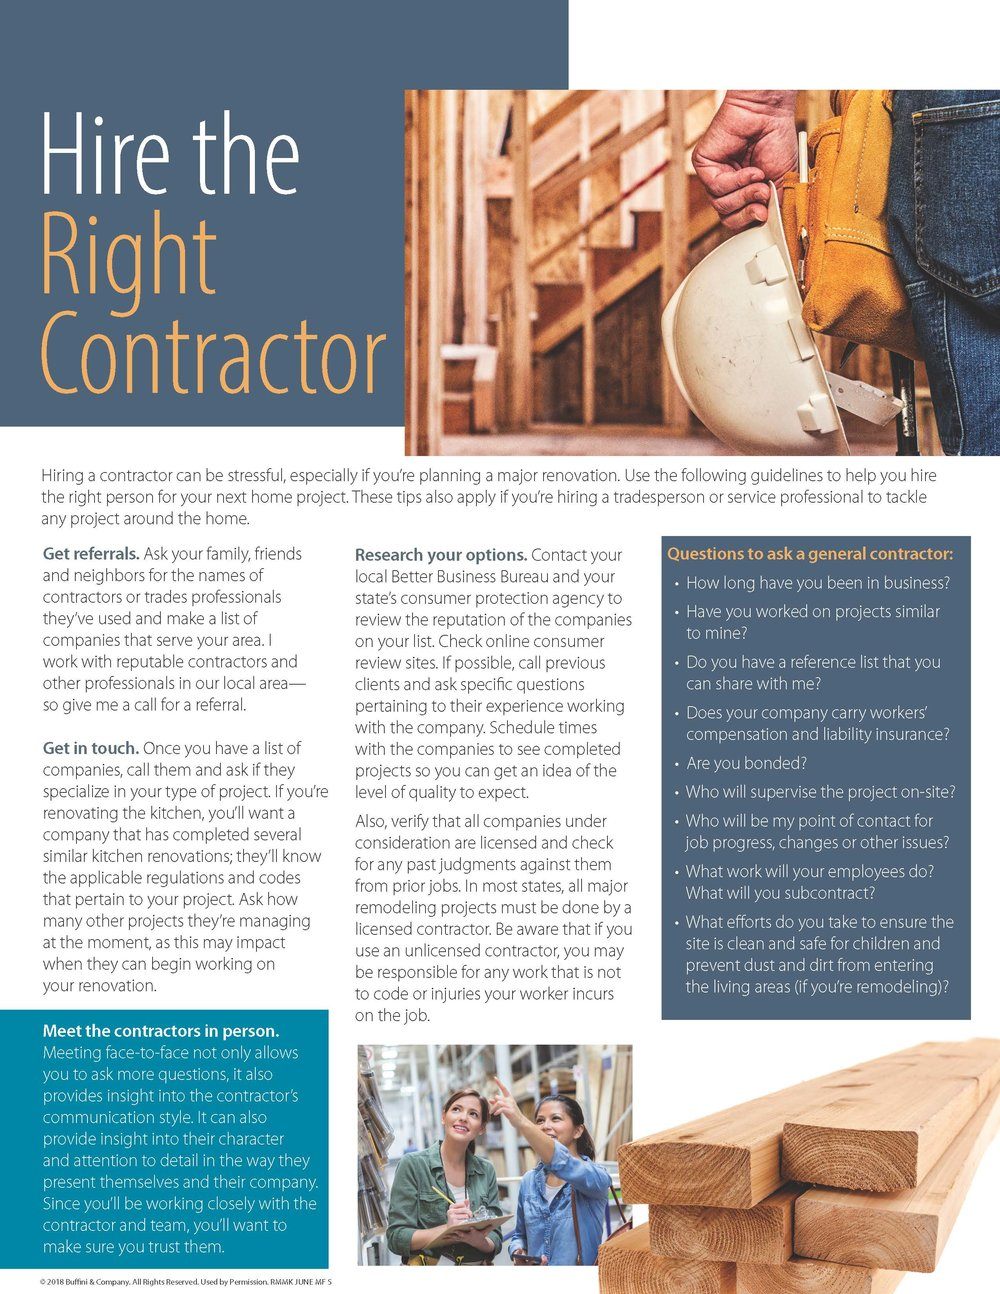 HireRightContractor6-2018_Page_1.jpg